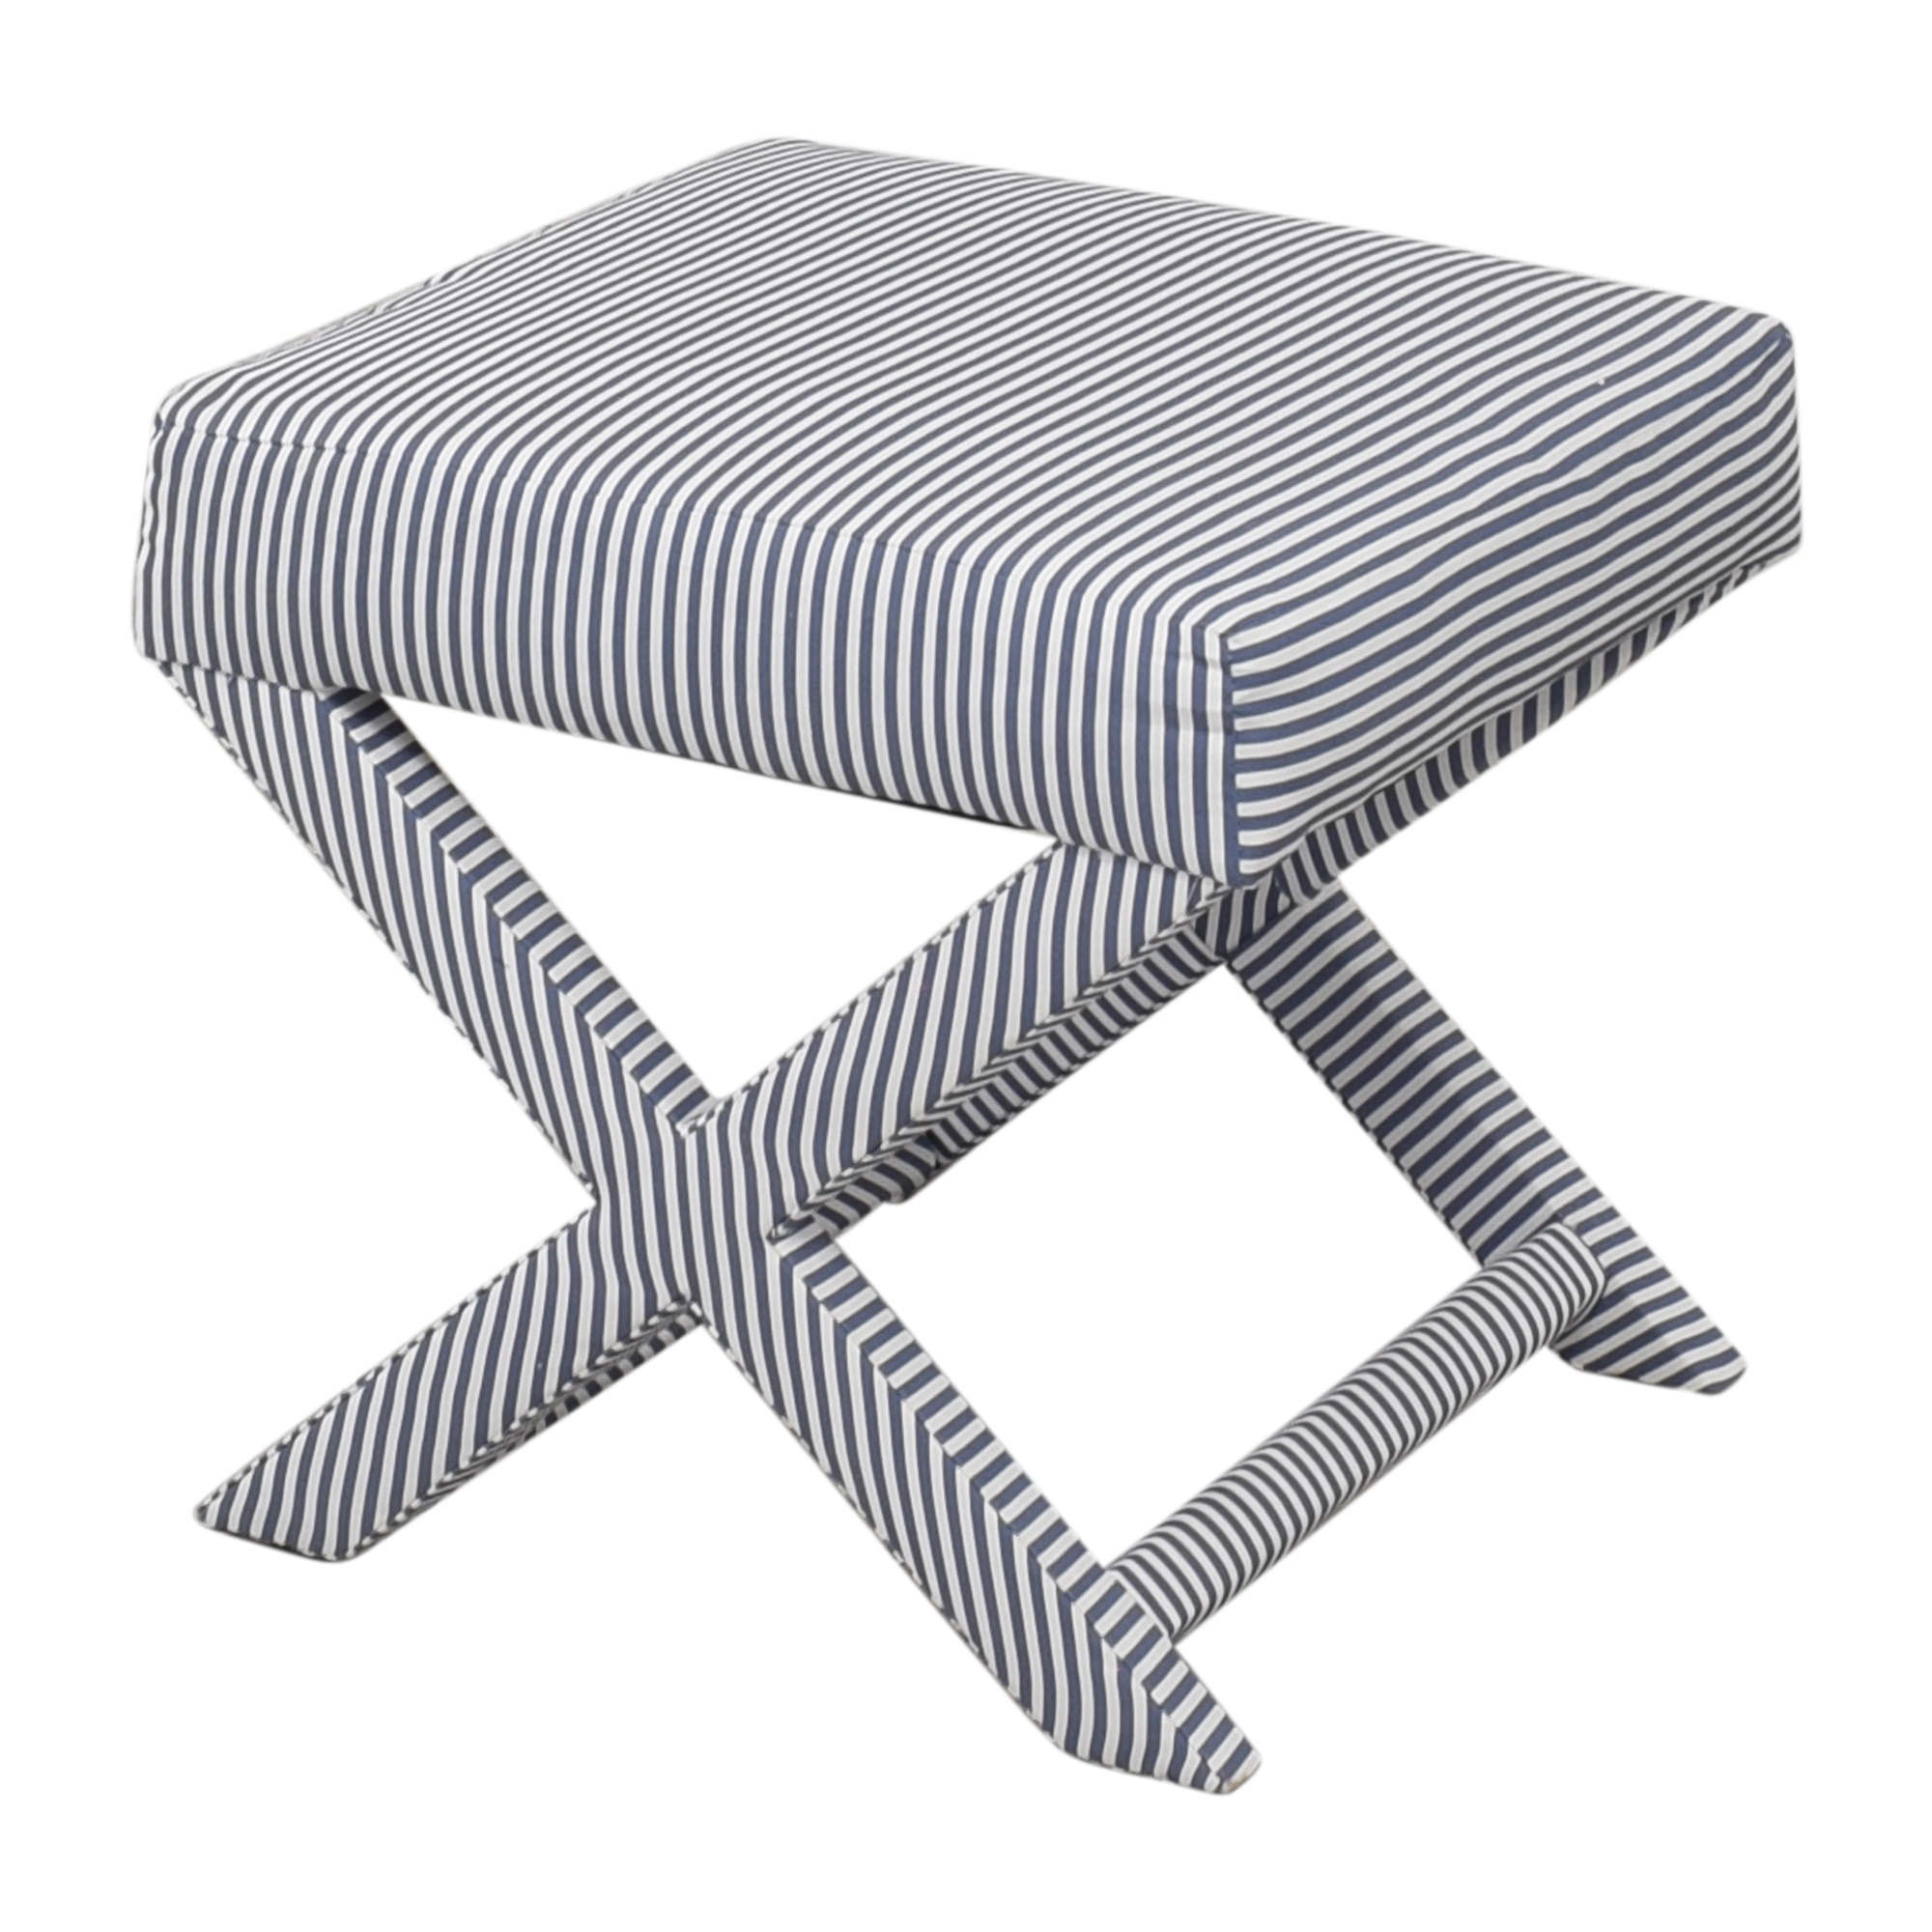 The Inside The inside Ticking Stripe X Bench discount